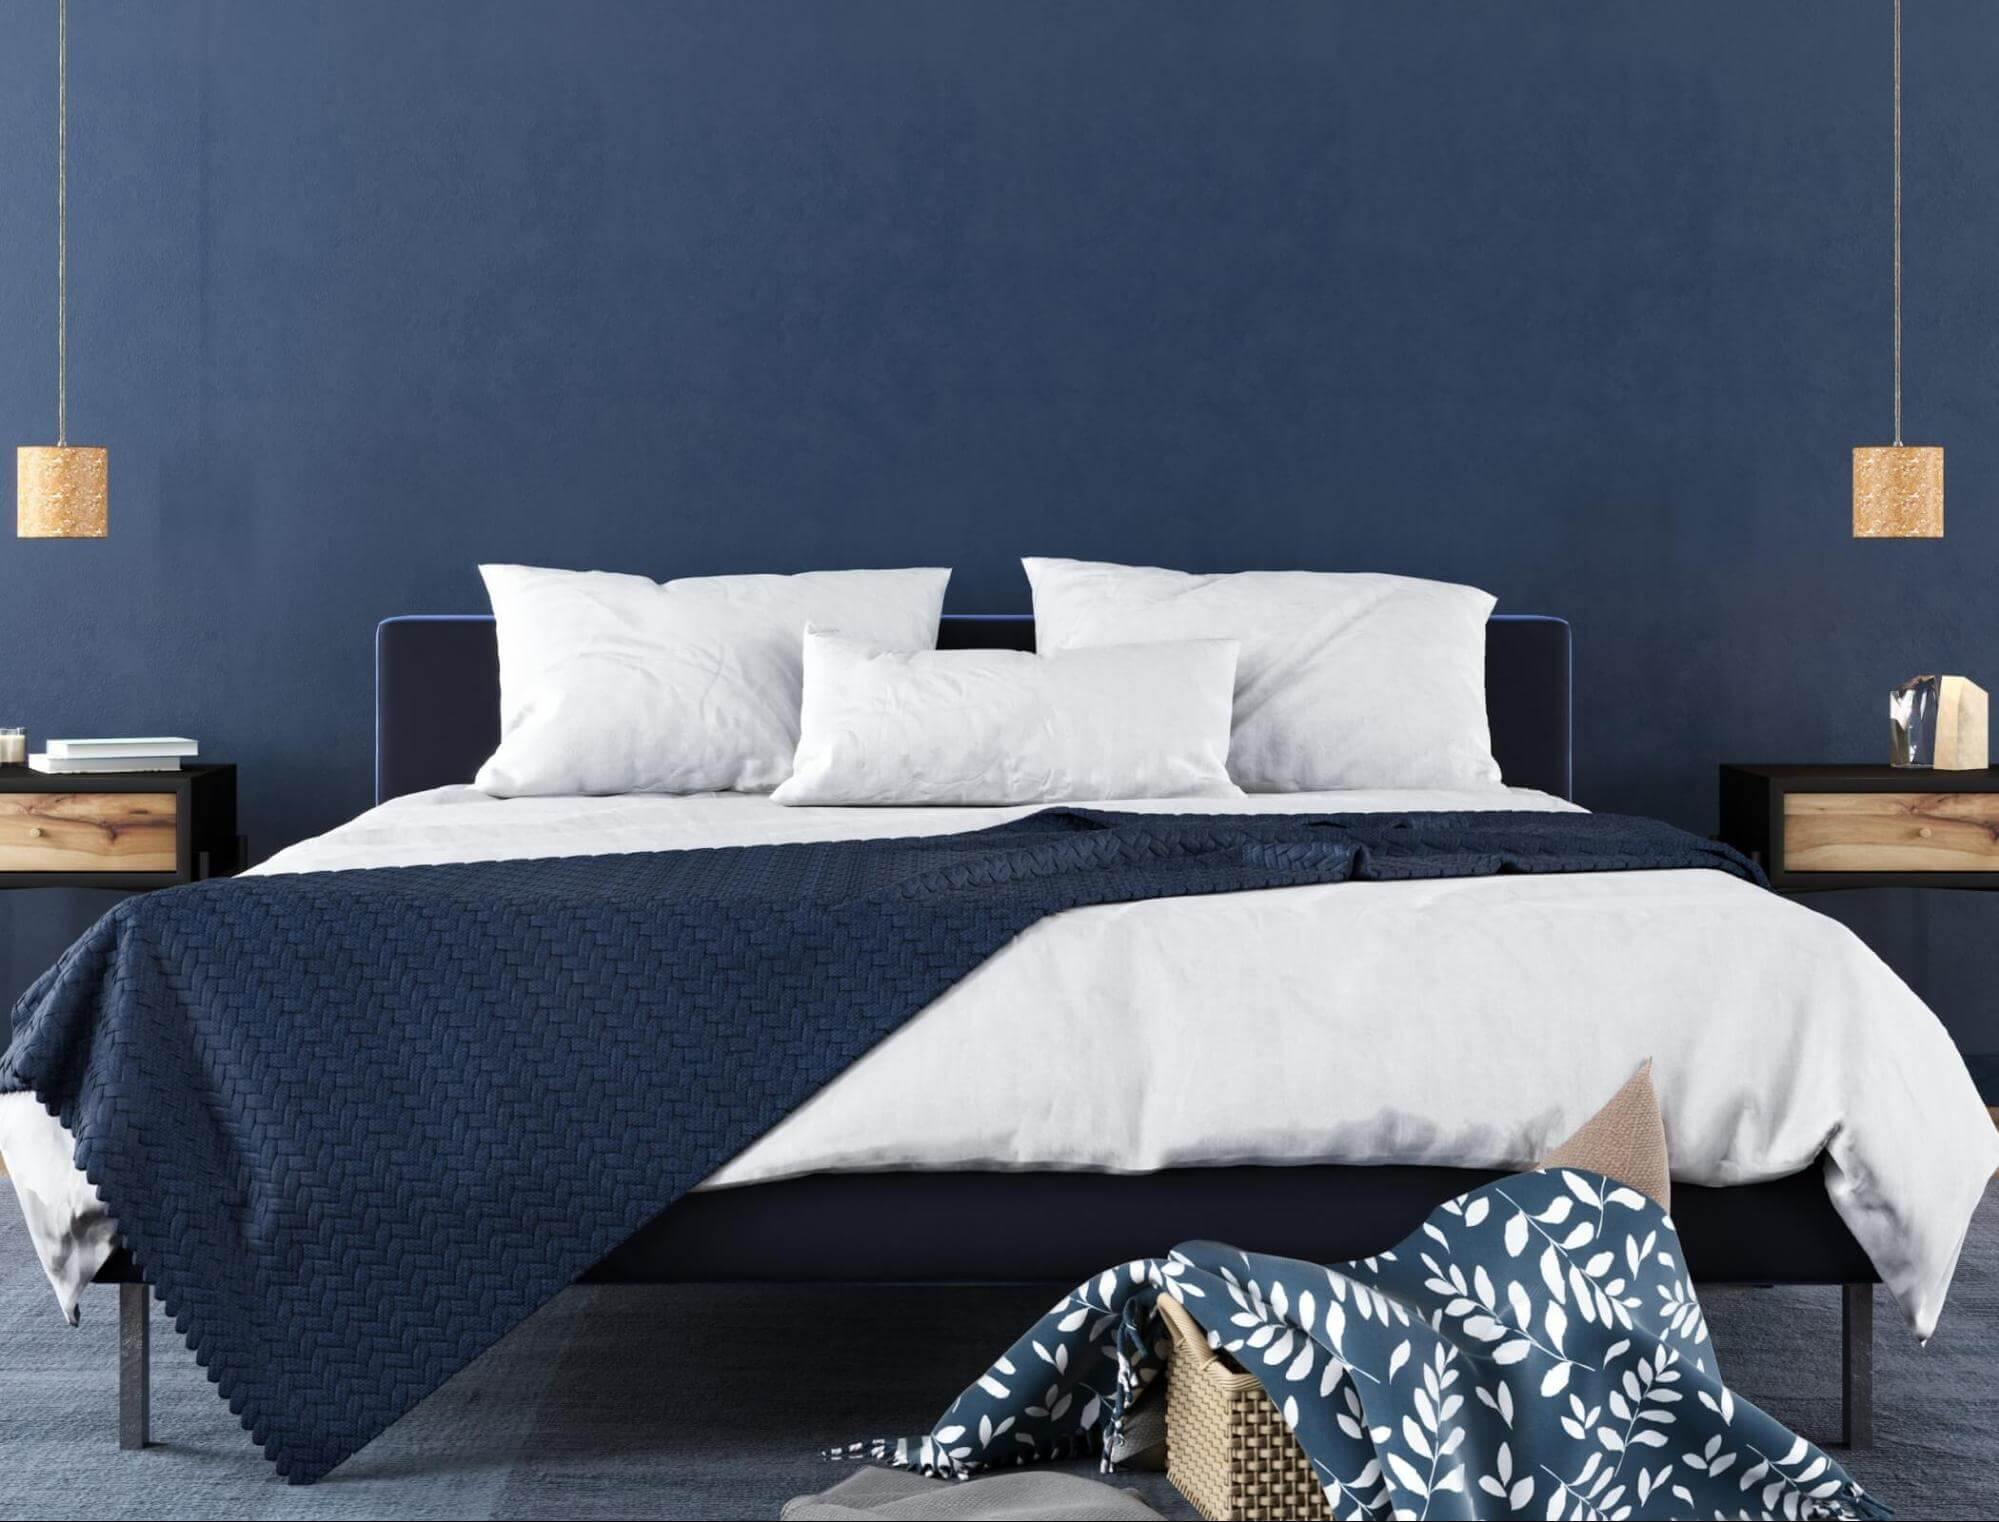 A blue and white bedroom.